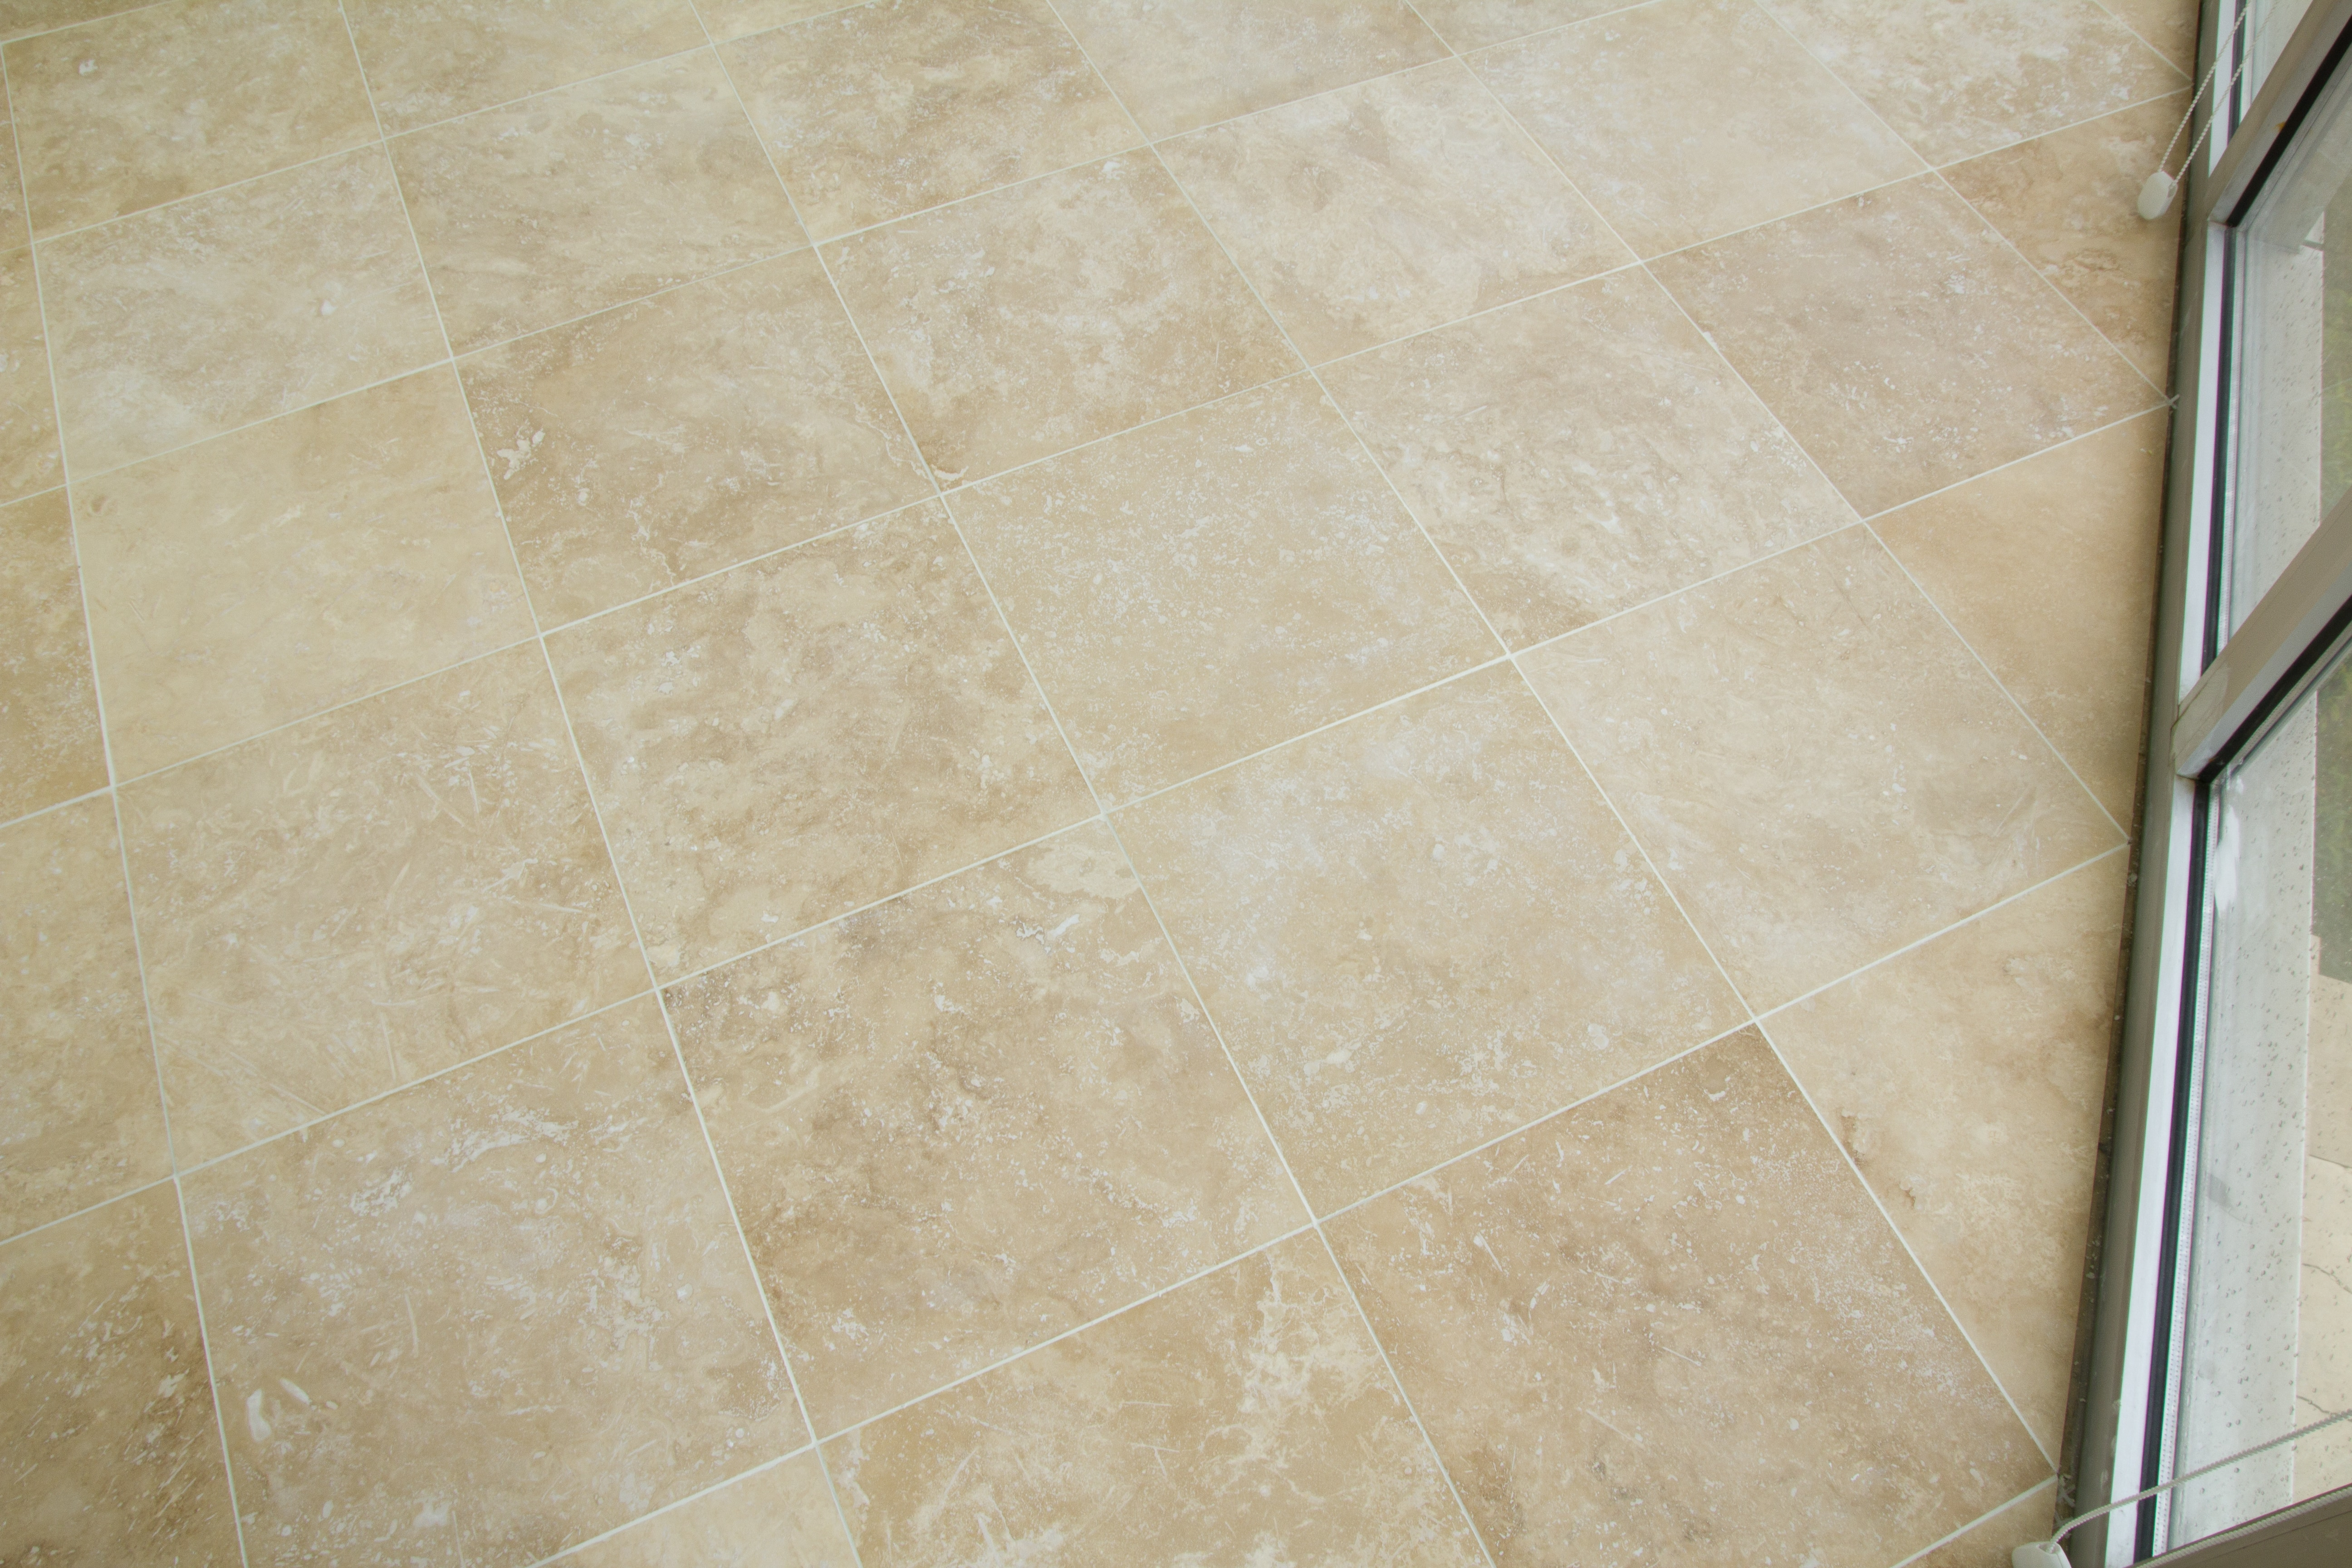 Free samples kesir travertine tiles honed and filled denizli free samples kesir travertine tiles honed and filled denizli beige standard 18x18x12 honed and filled dailygadgetfo Gallery